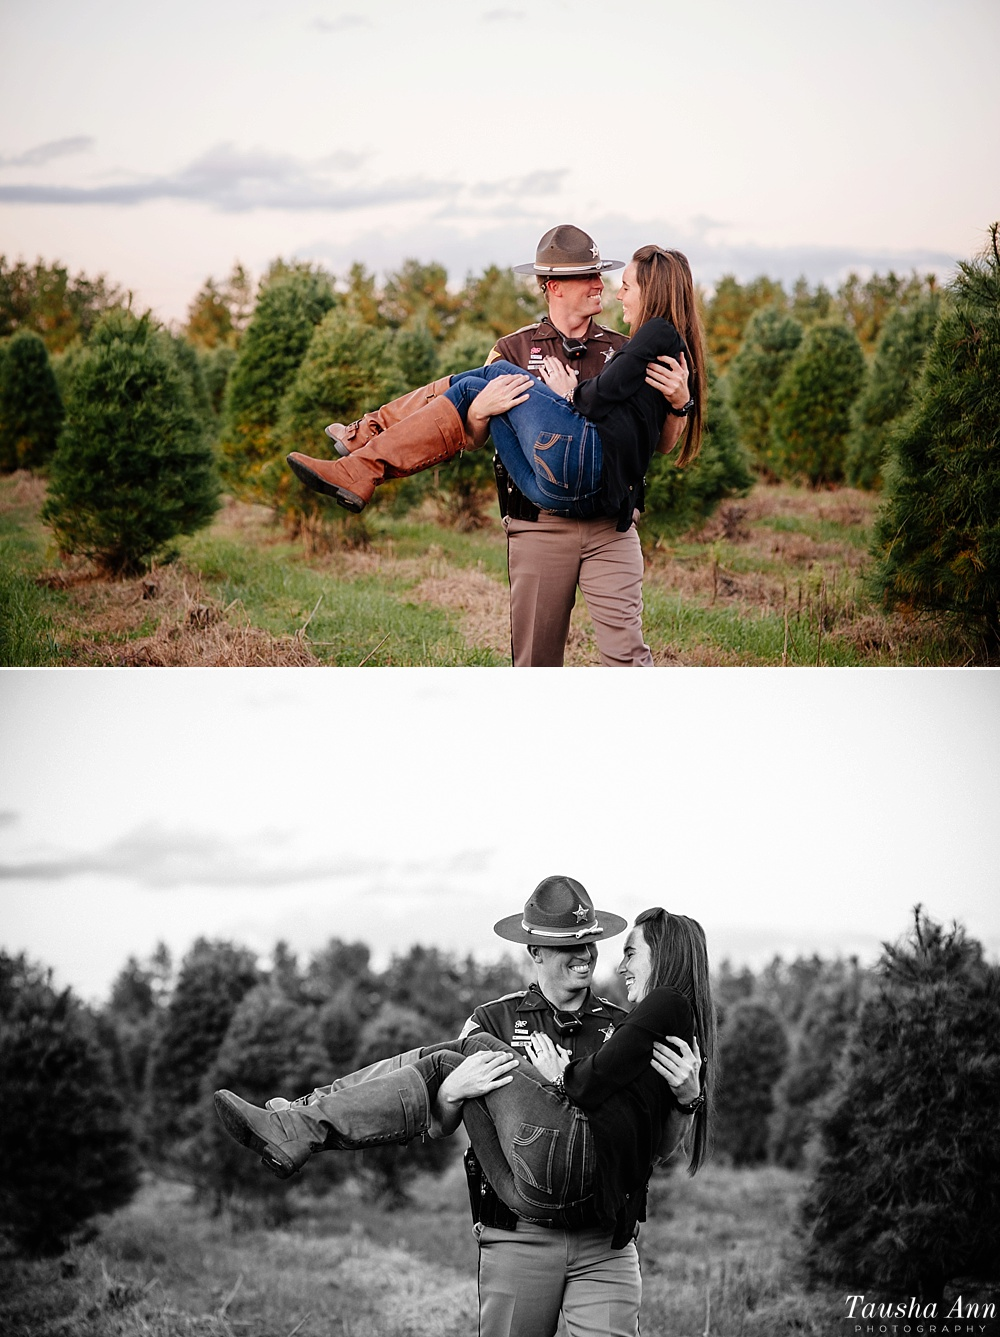 Surprise Proposal at Country Cove Christmas Tree Farm. Police officer surprise proposal at Sunset. Having fun laughing while carrying fiance between Christmas Trees.